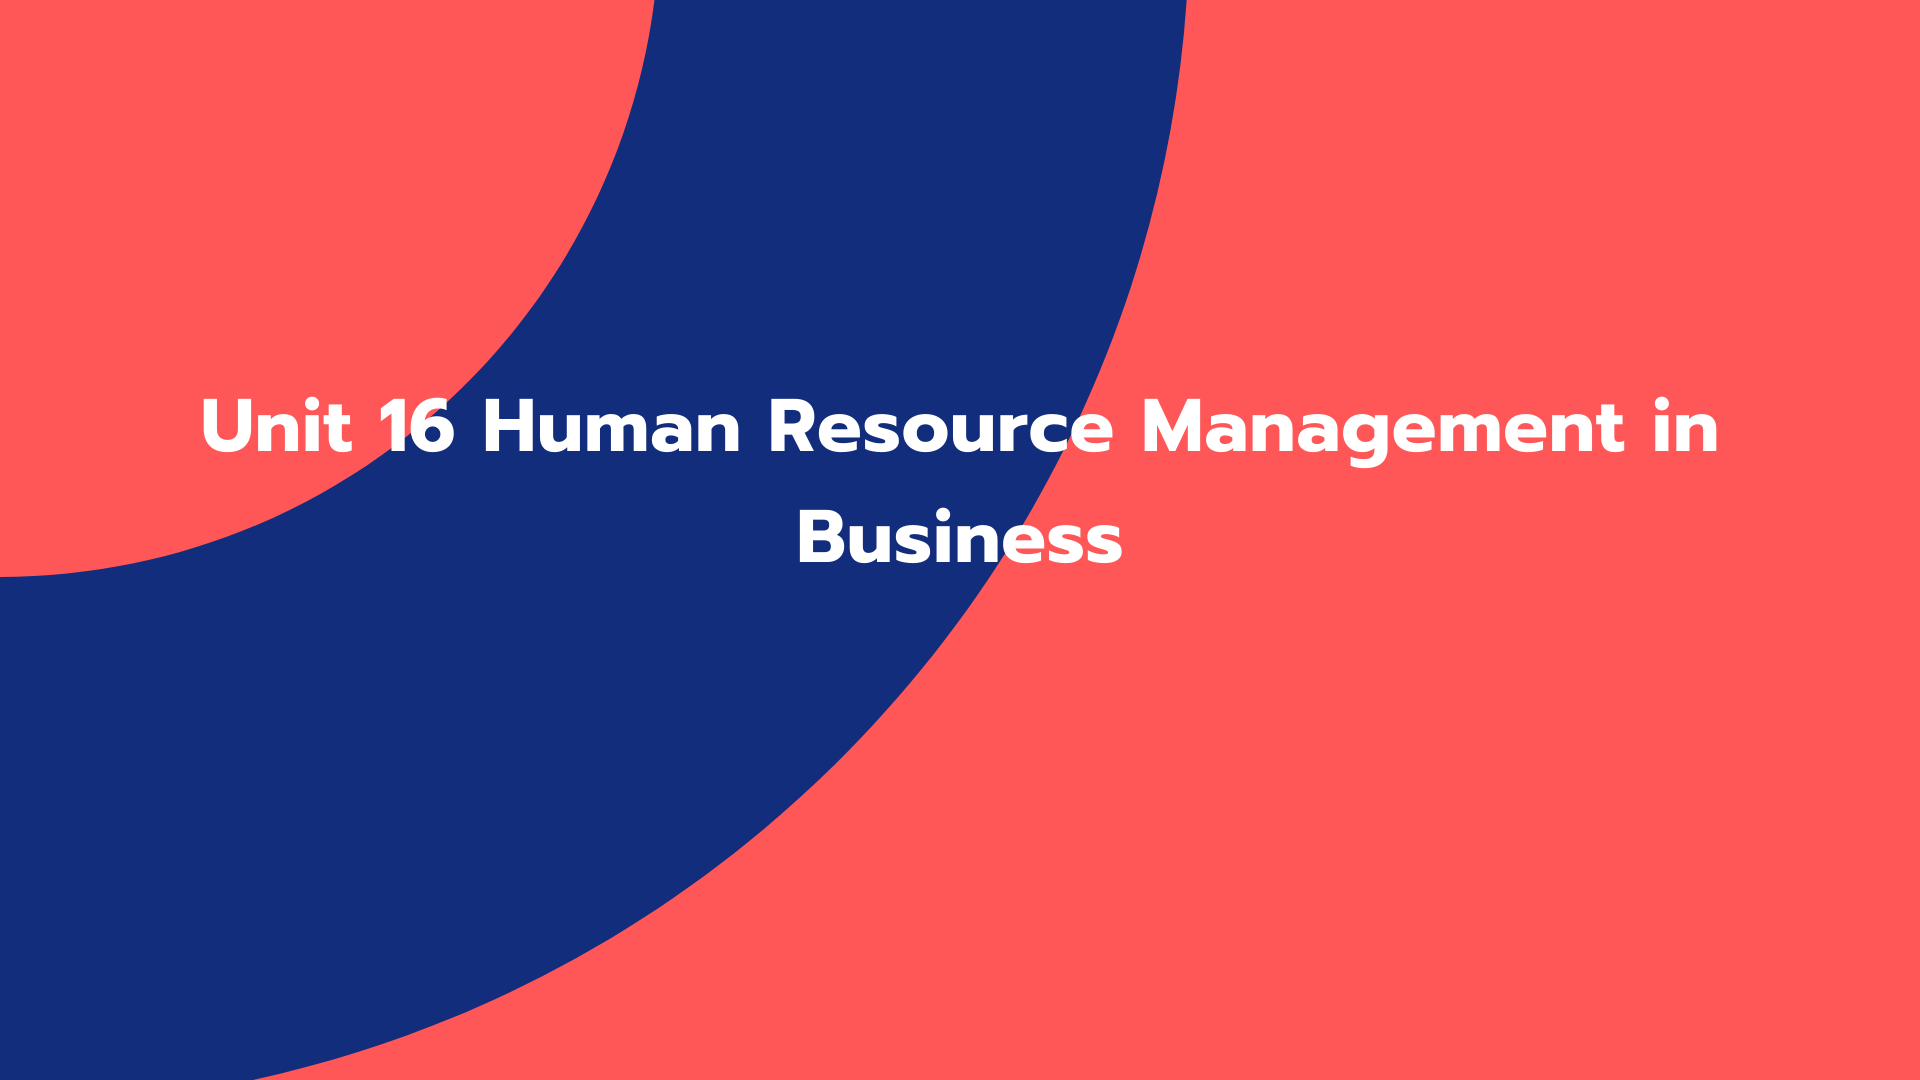 Unit 16 Human Resource Management in Business